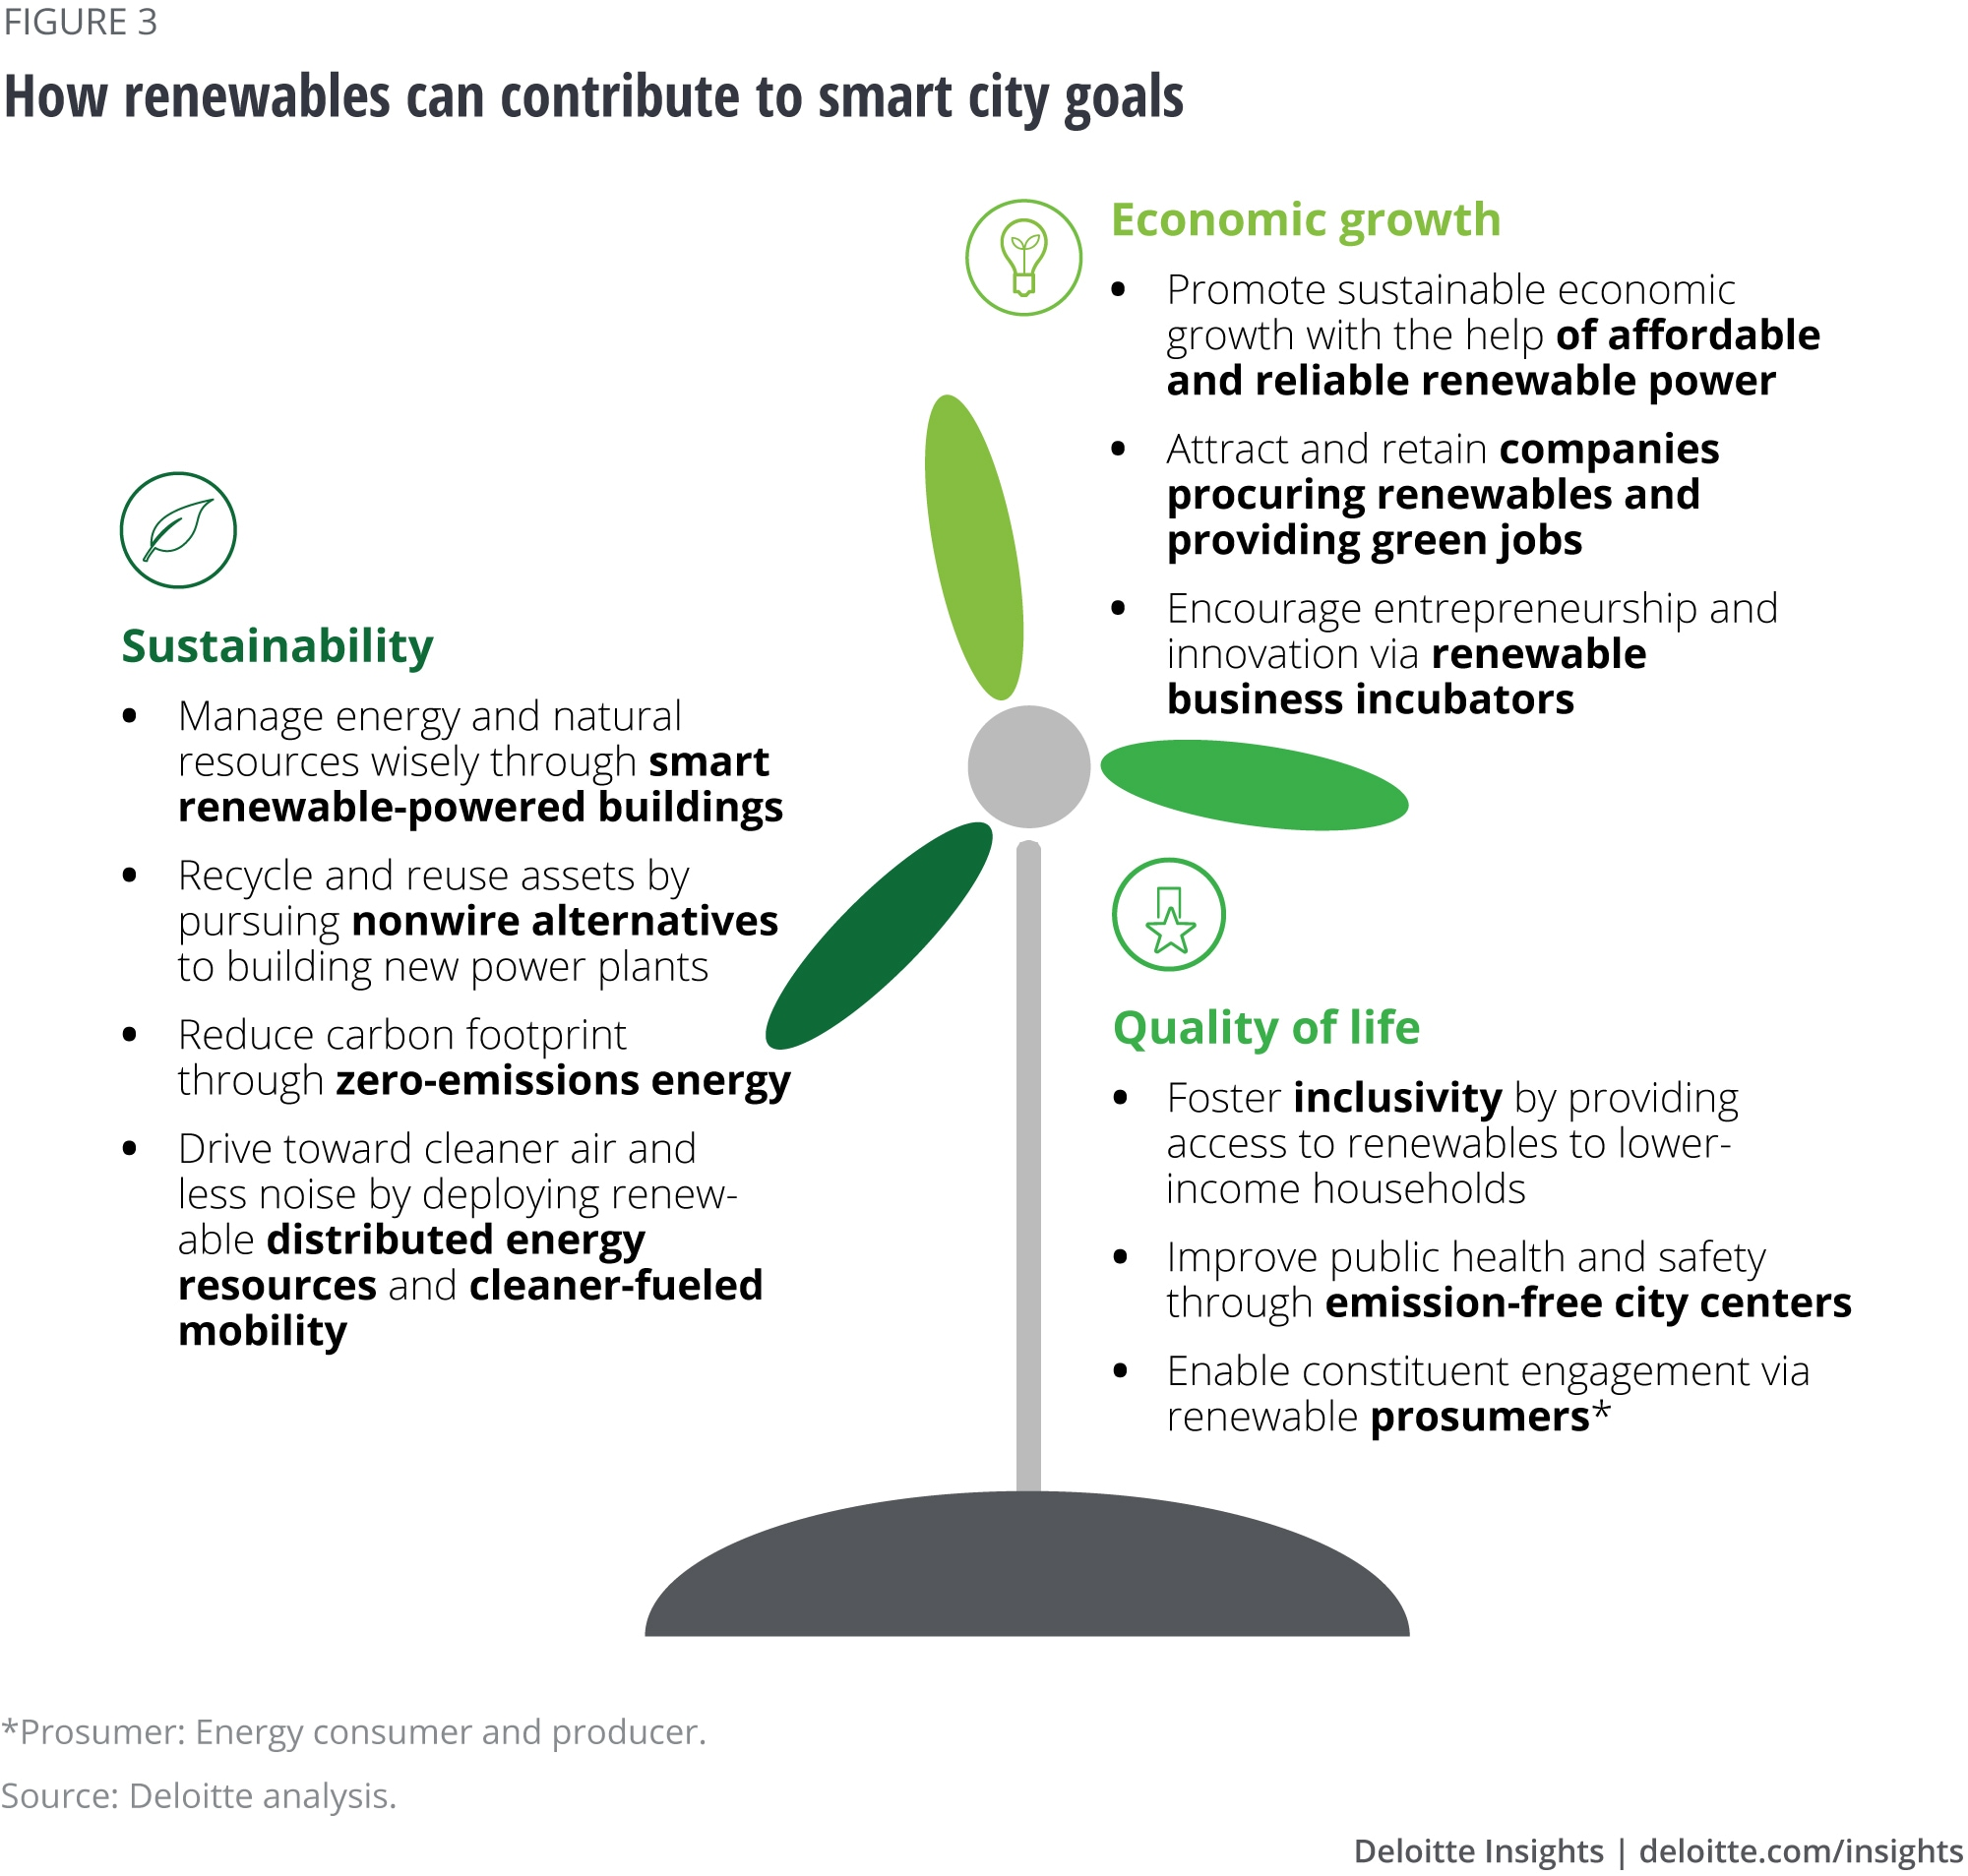 How renewables can contribute to smart city goals